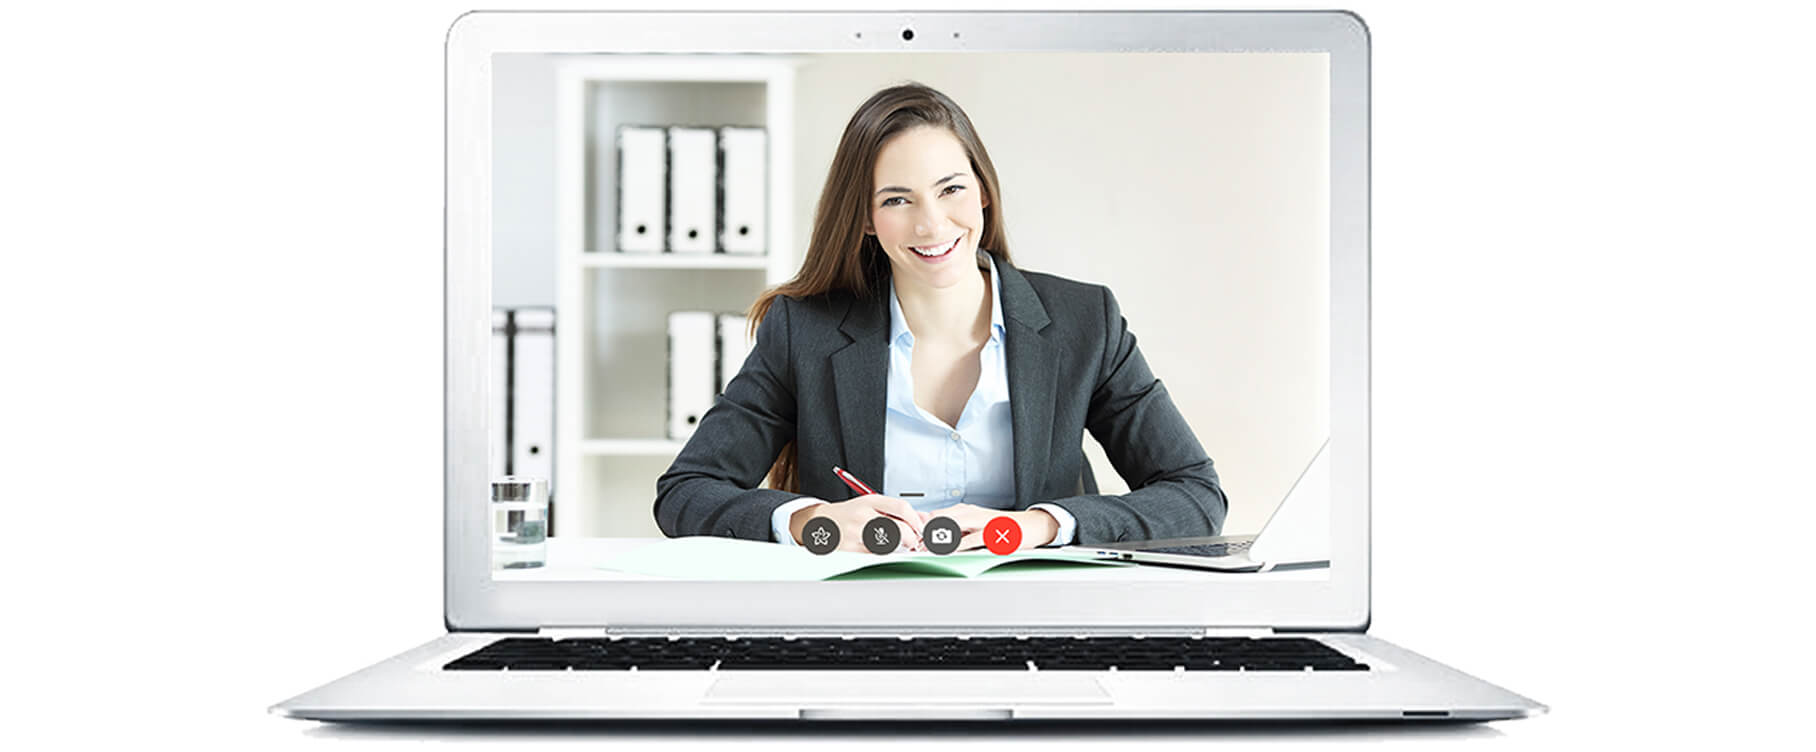 free legal advice online chat uk